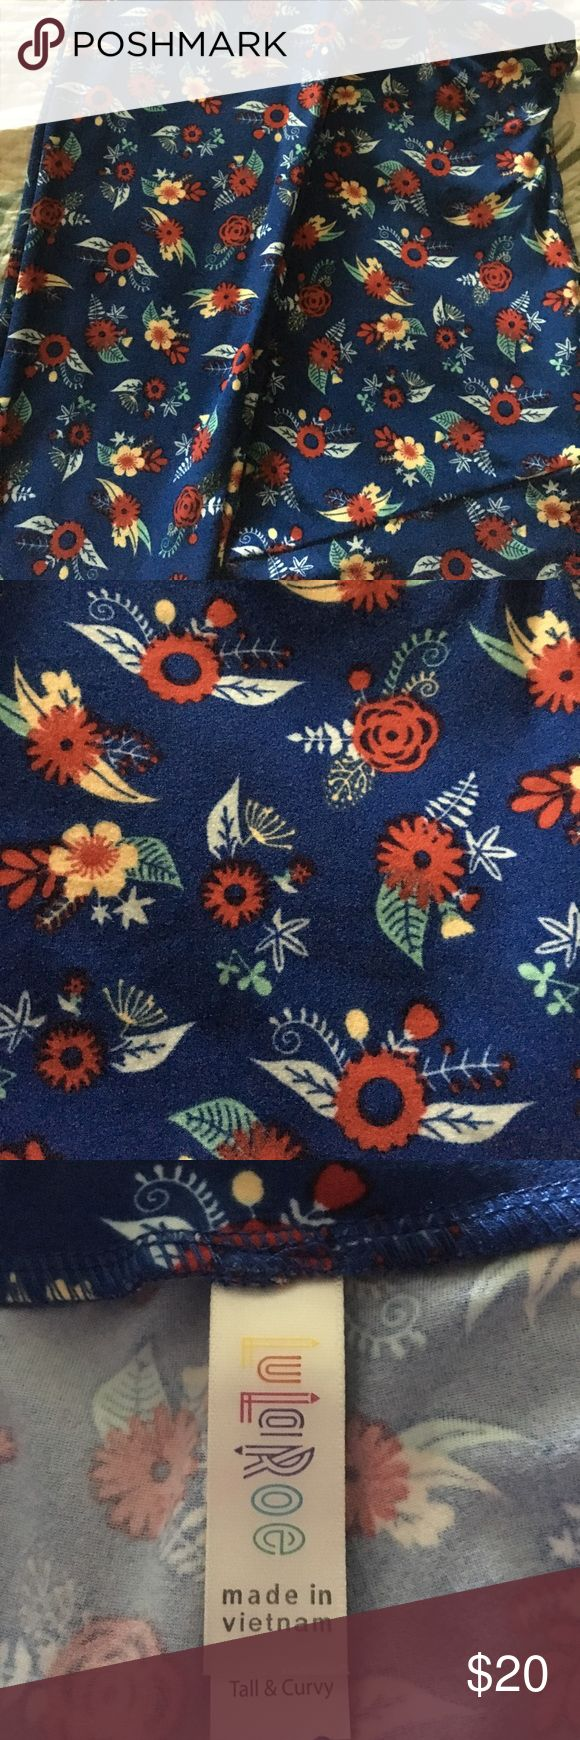 Adorable Flowered LulaRoe TC Leggings Brand new cute as a button Lularoe TC leggings.  Royal Blue background with tiny yellow and red flowers with delicate leaves. Perfect addition to your wardrobe! LuLaRoe Pants Leggings